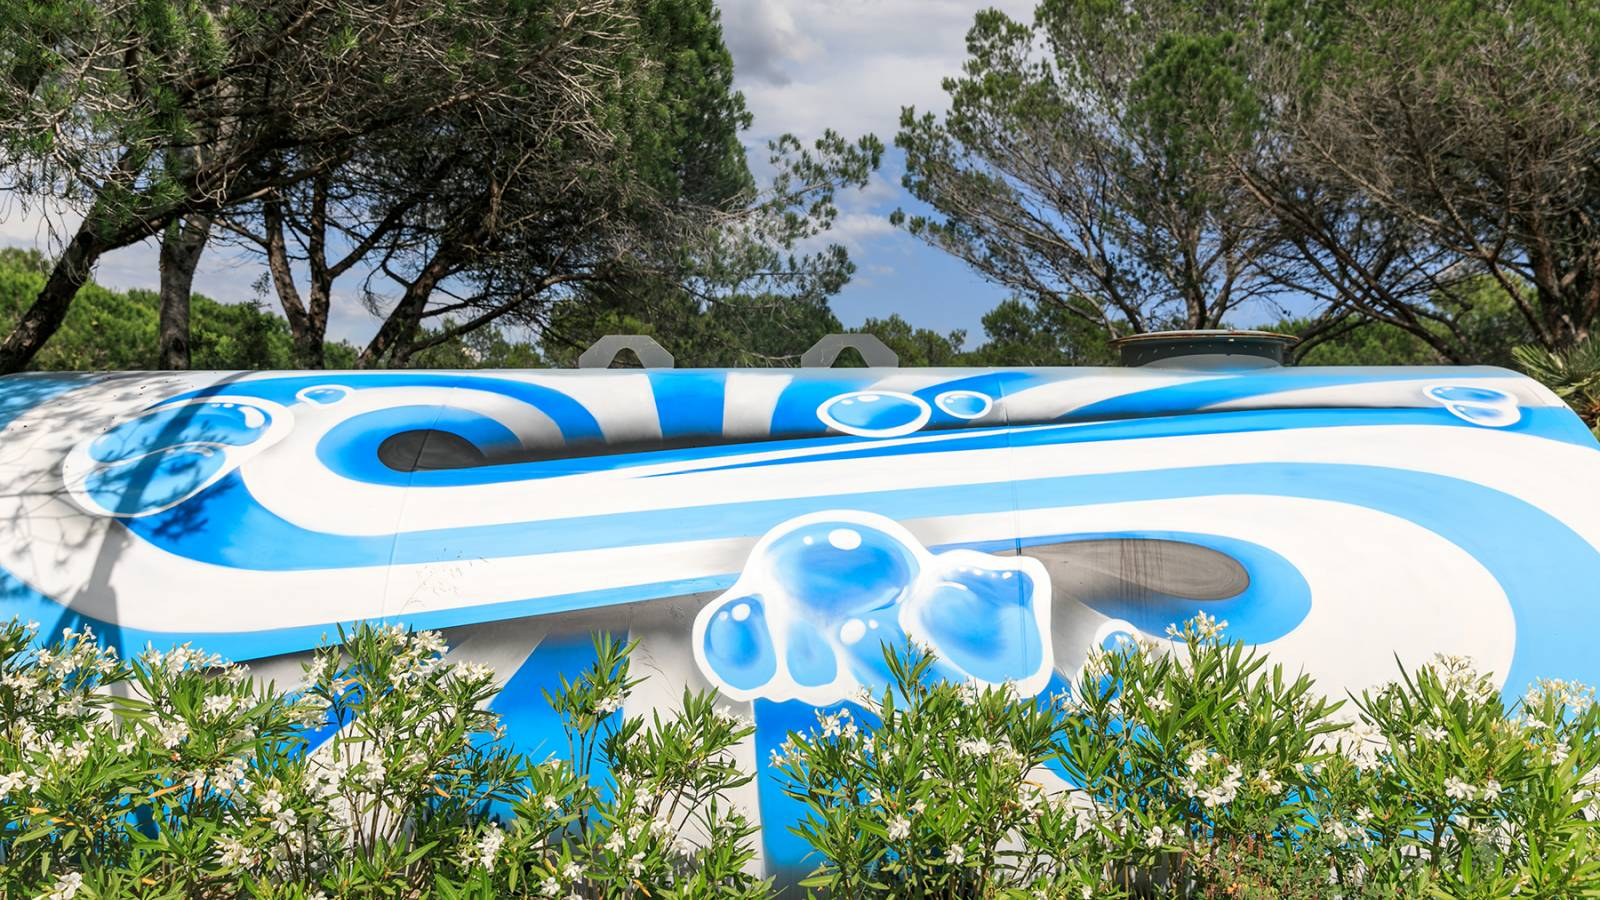 oeuvre d'art dans le camping holiday green